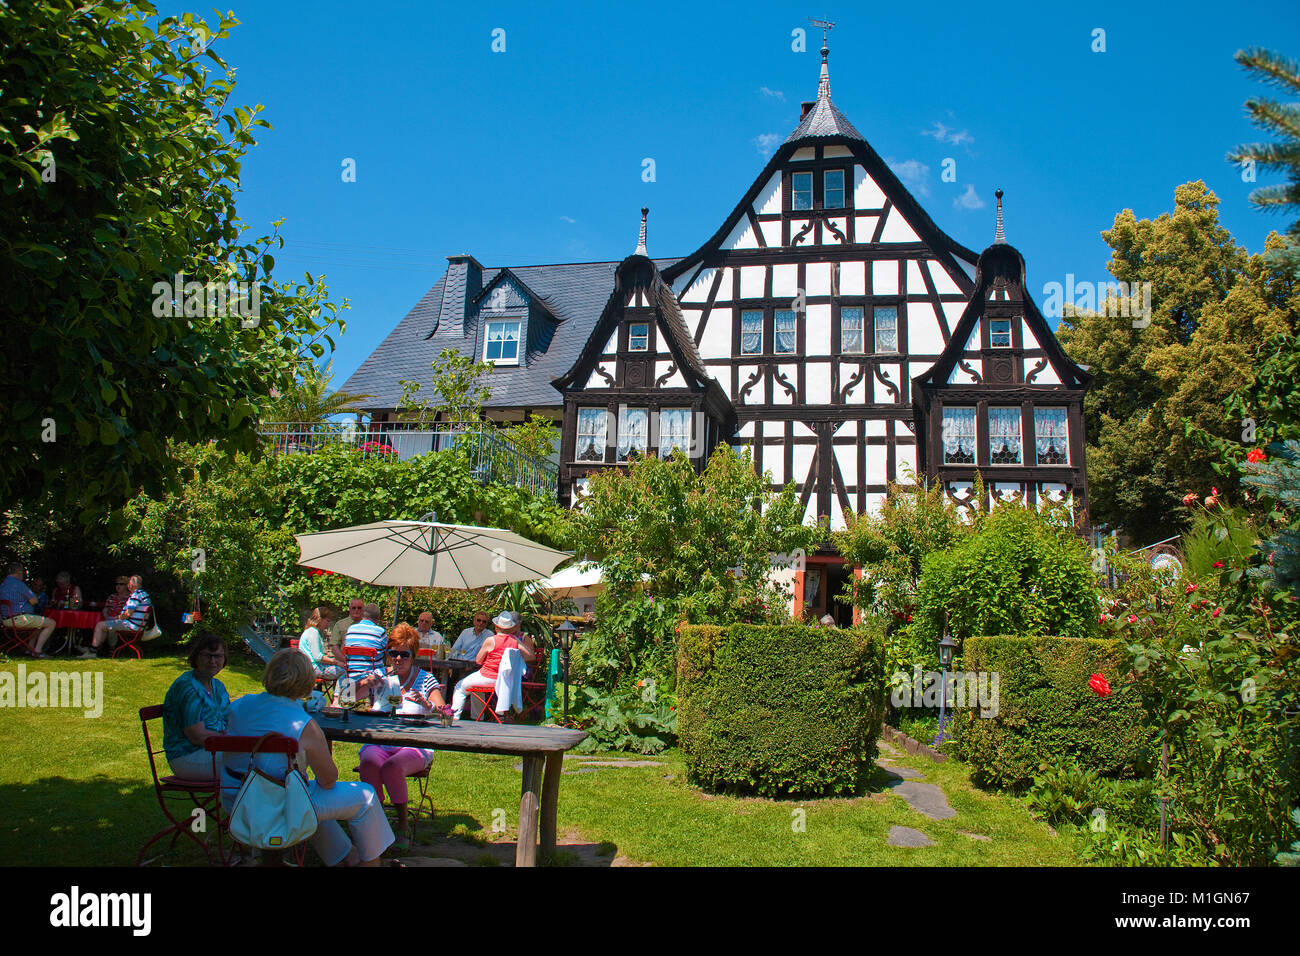 Vineyard Three Gable house, 300 hundred years old half-timbered house, gastronomy at beautiful garden, Kroev, Moselle, - Stock Image